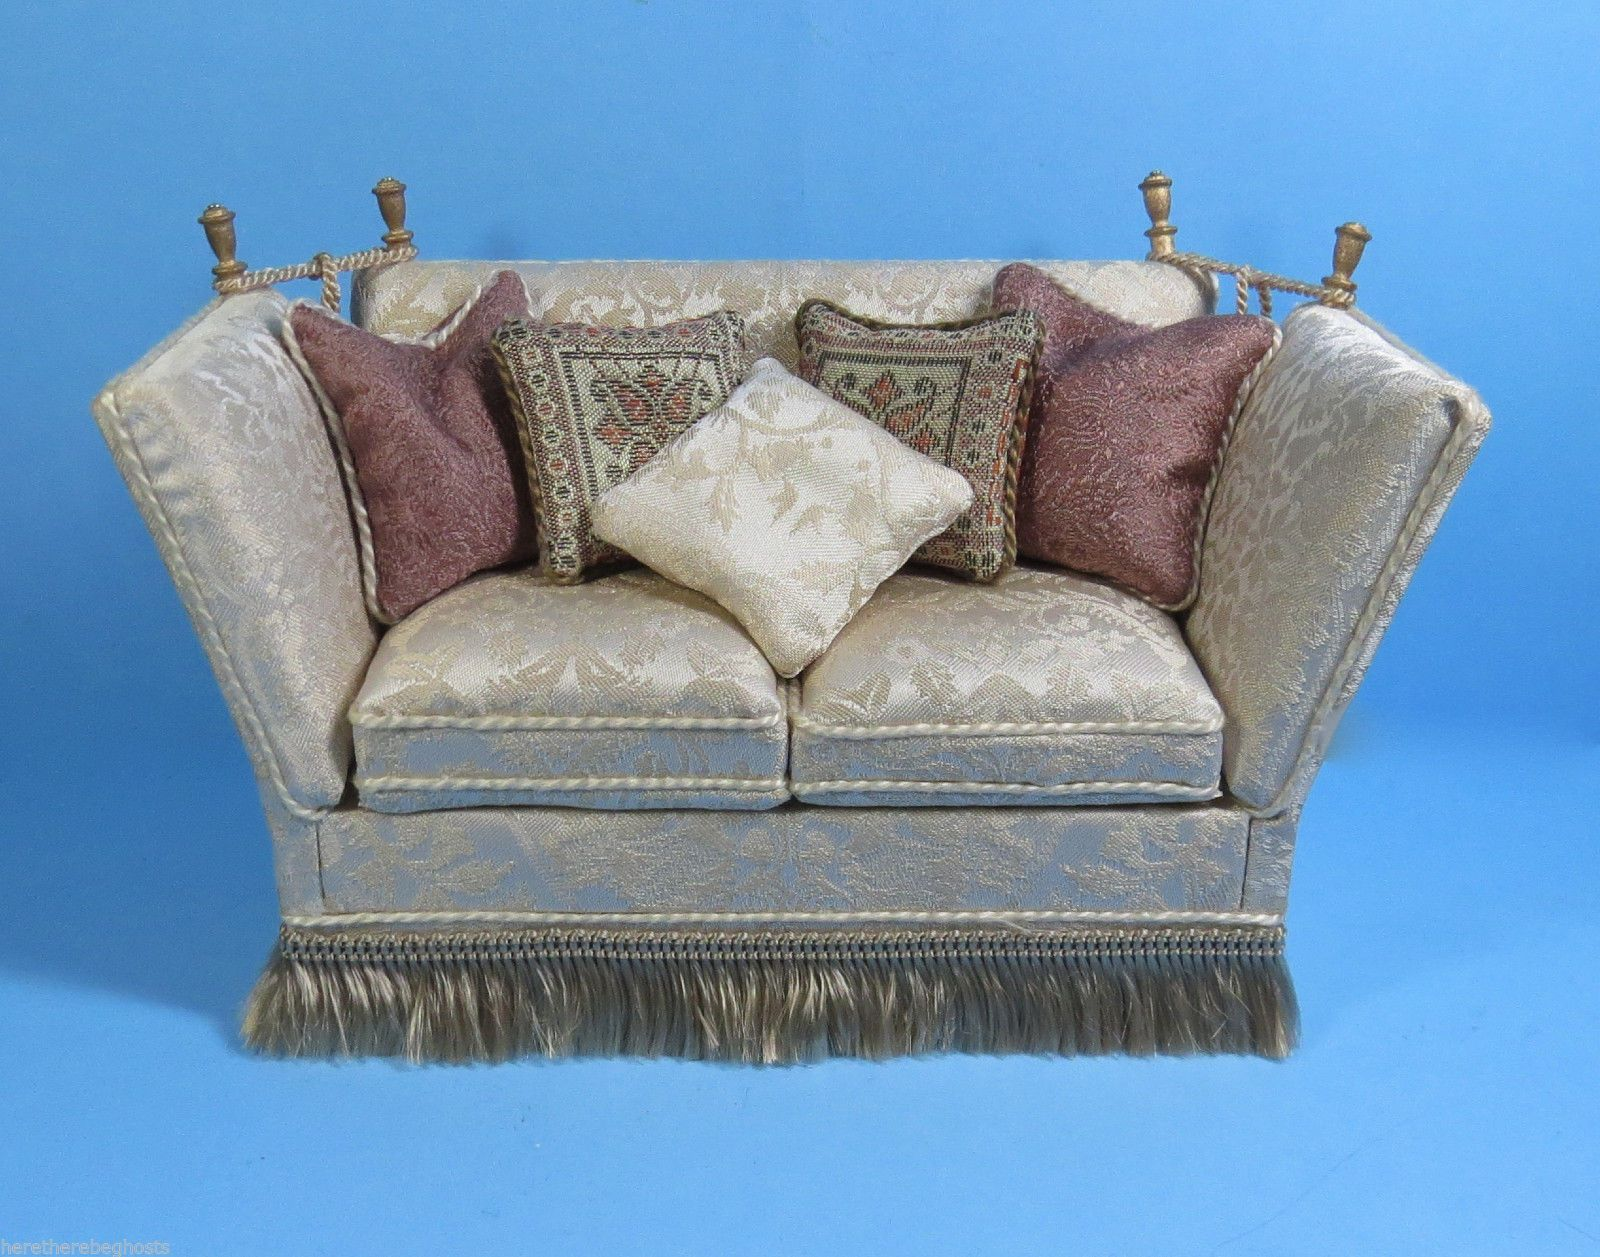 Ordinaire Ron Hubble   Knowles Sofa Upholstered In Cream Damask With Throw Pillows;  Sold On Ebay For $285